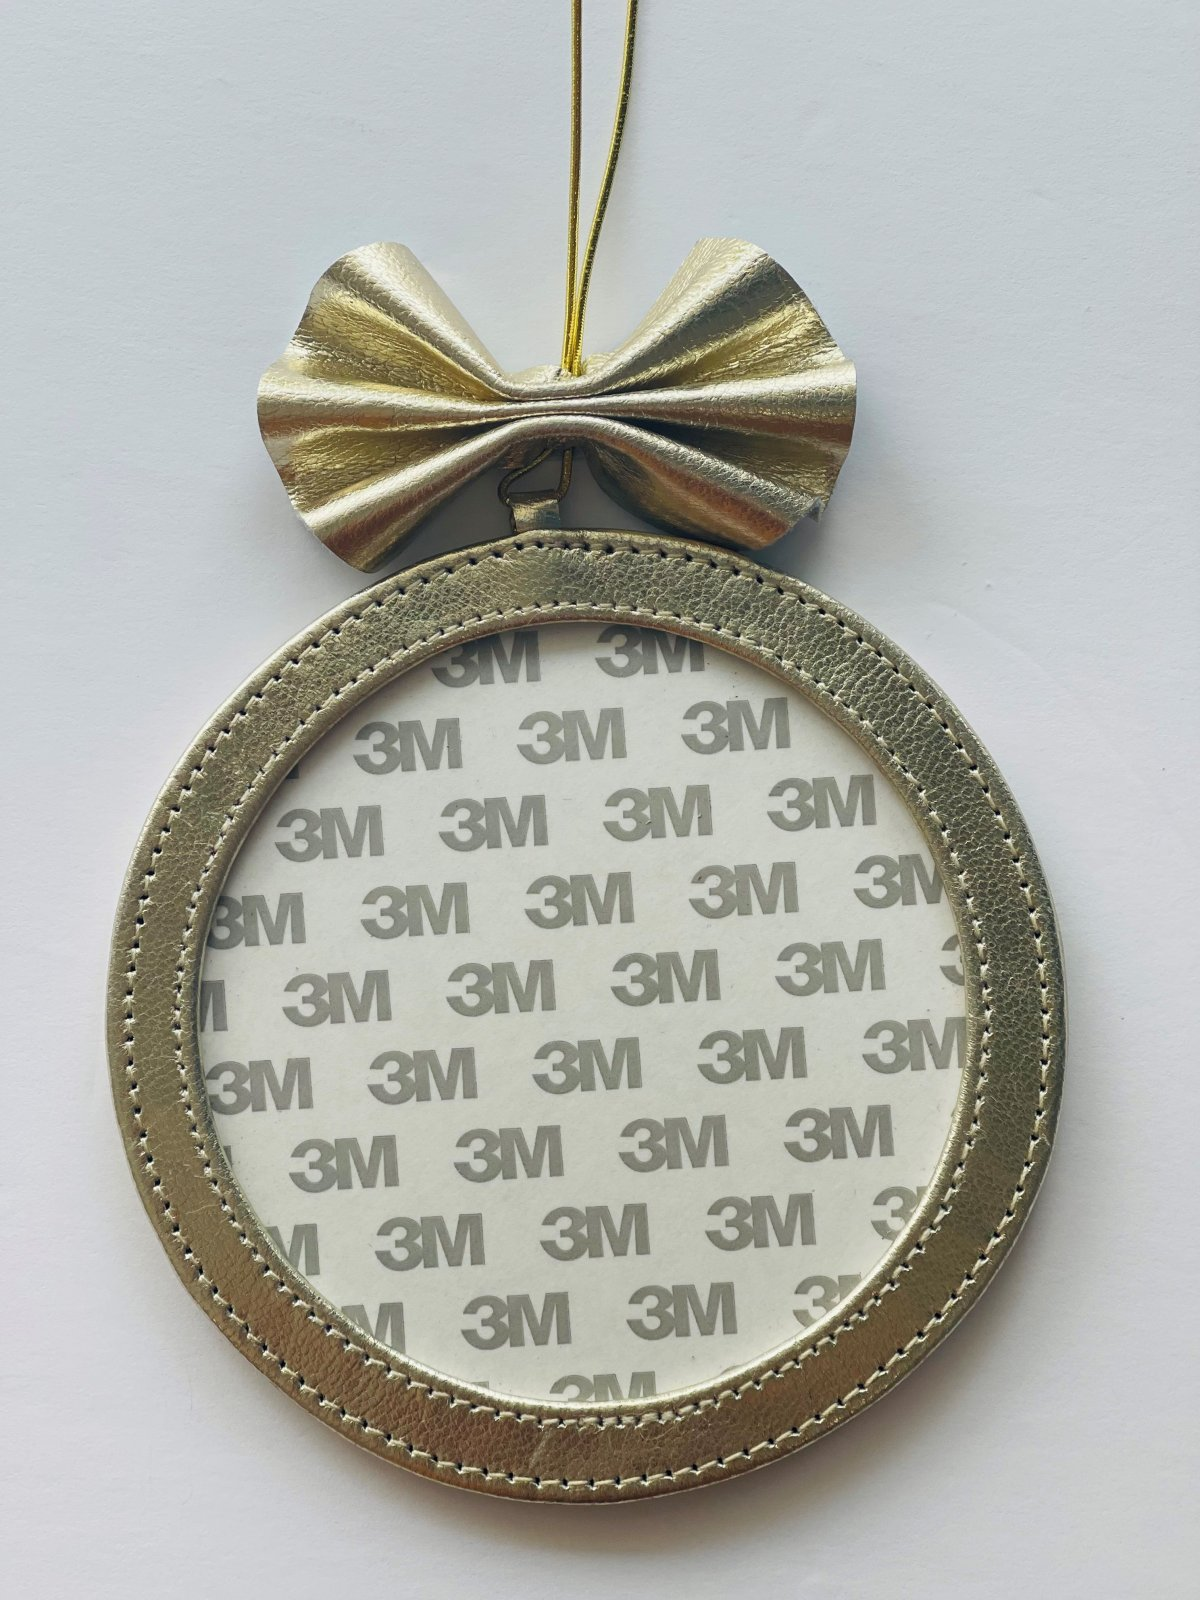 5 Round Holiday Ornament - Gold Foil